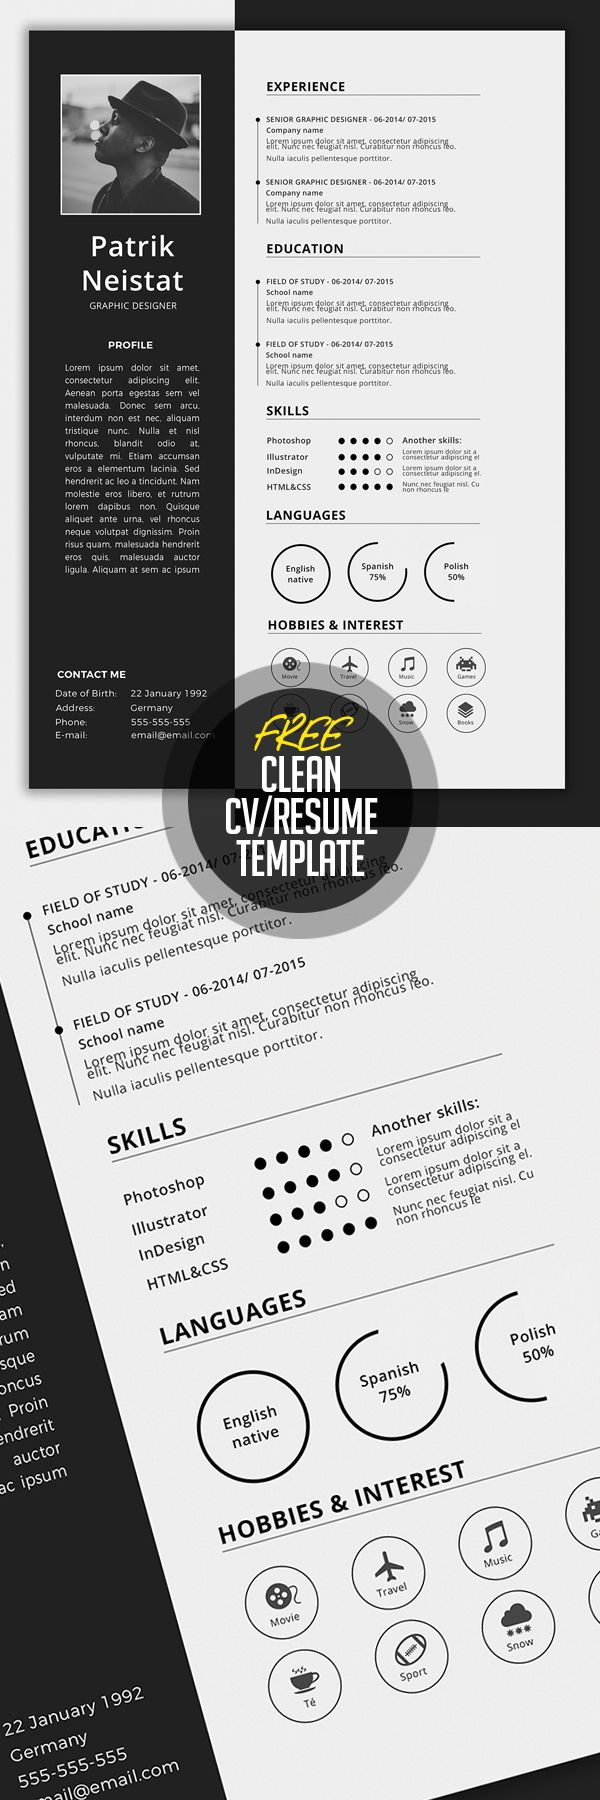 Simple CV/Resume Template Free Download More  Download Resume Templates